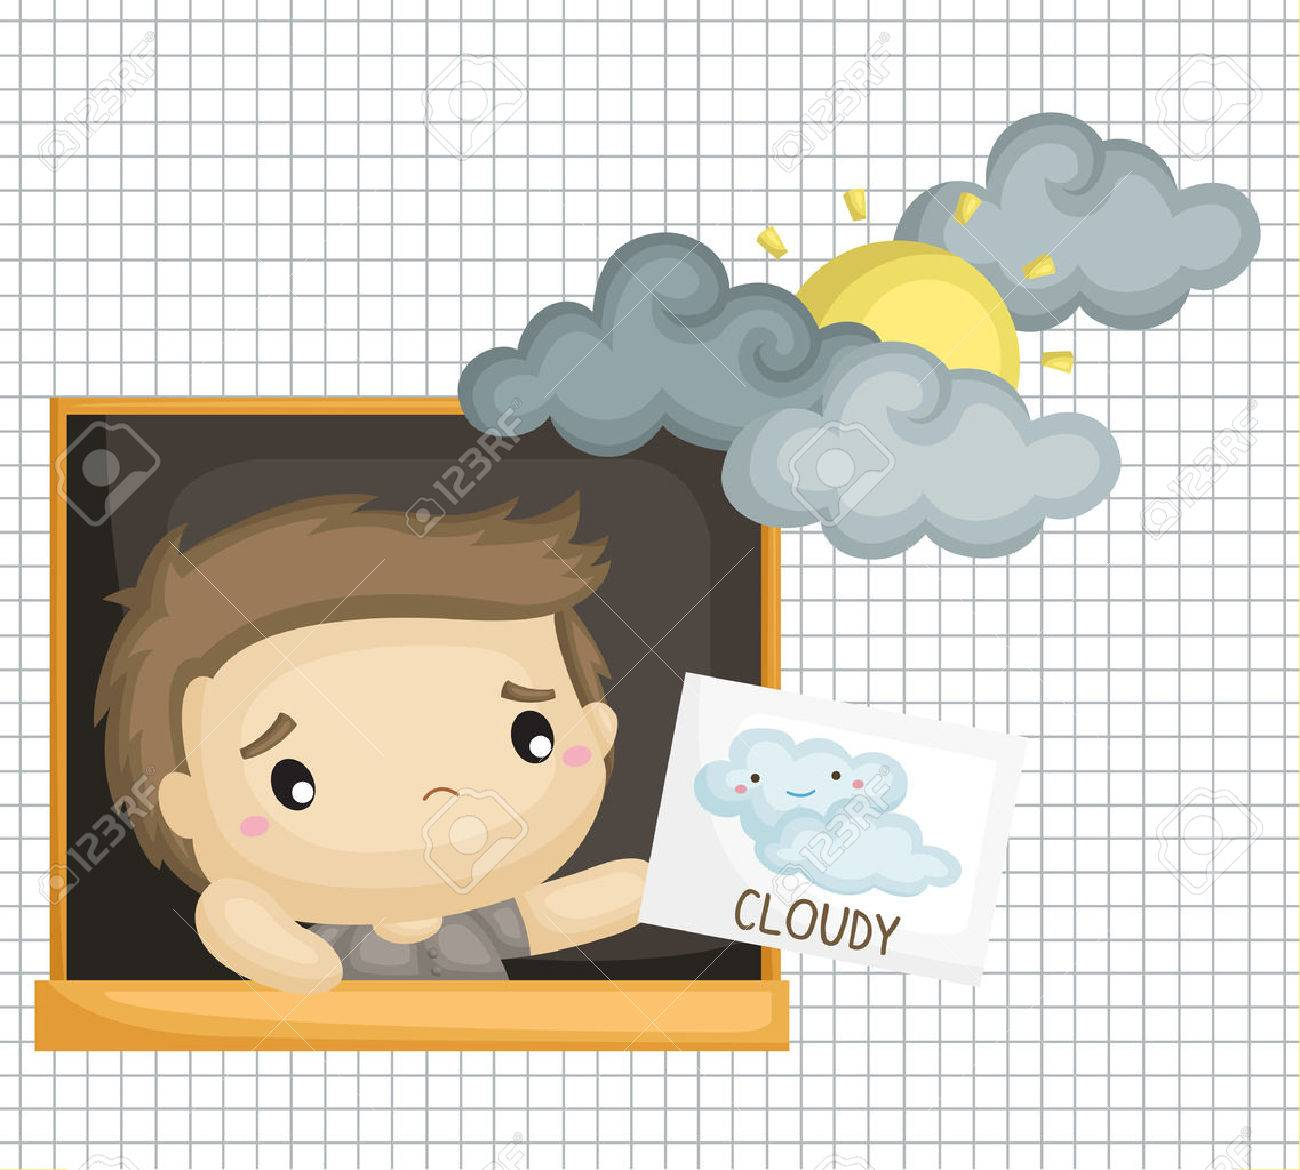 cloudy weather royalty free cliparts vectors and stock